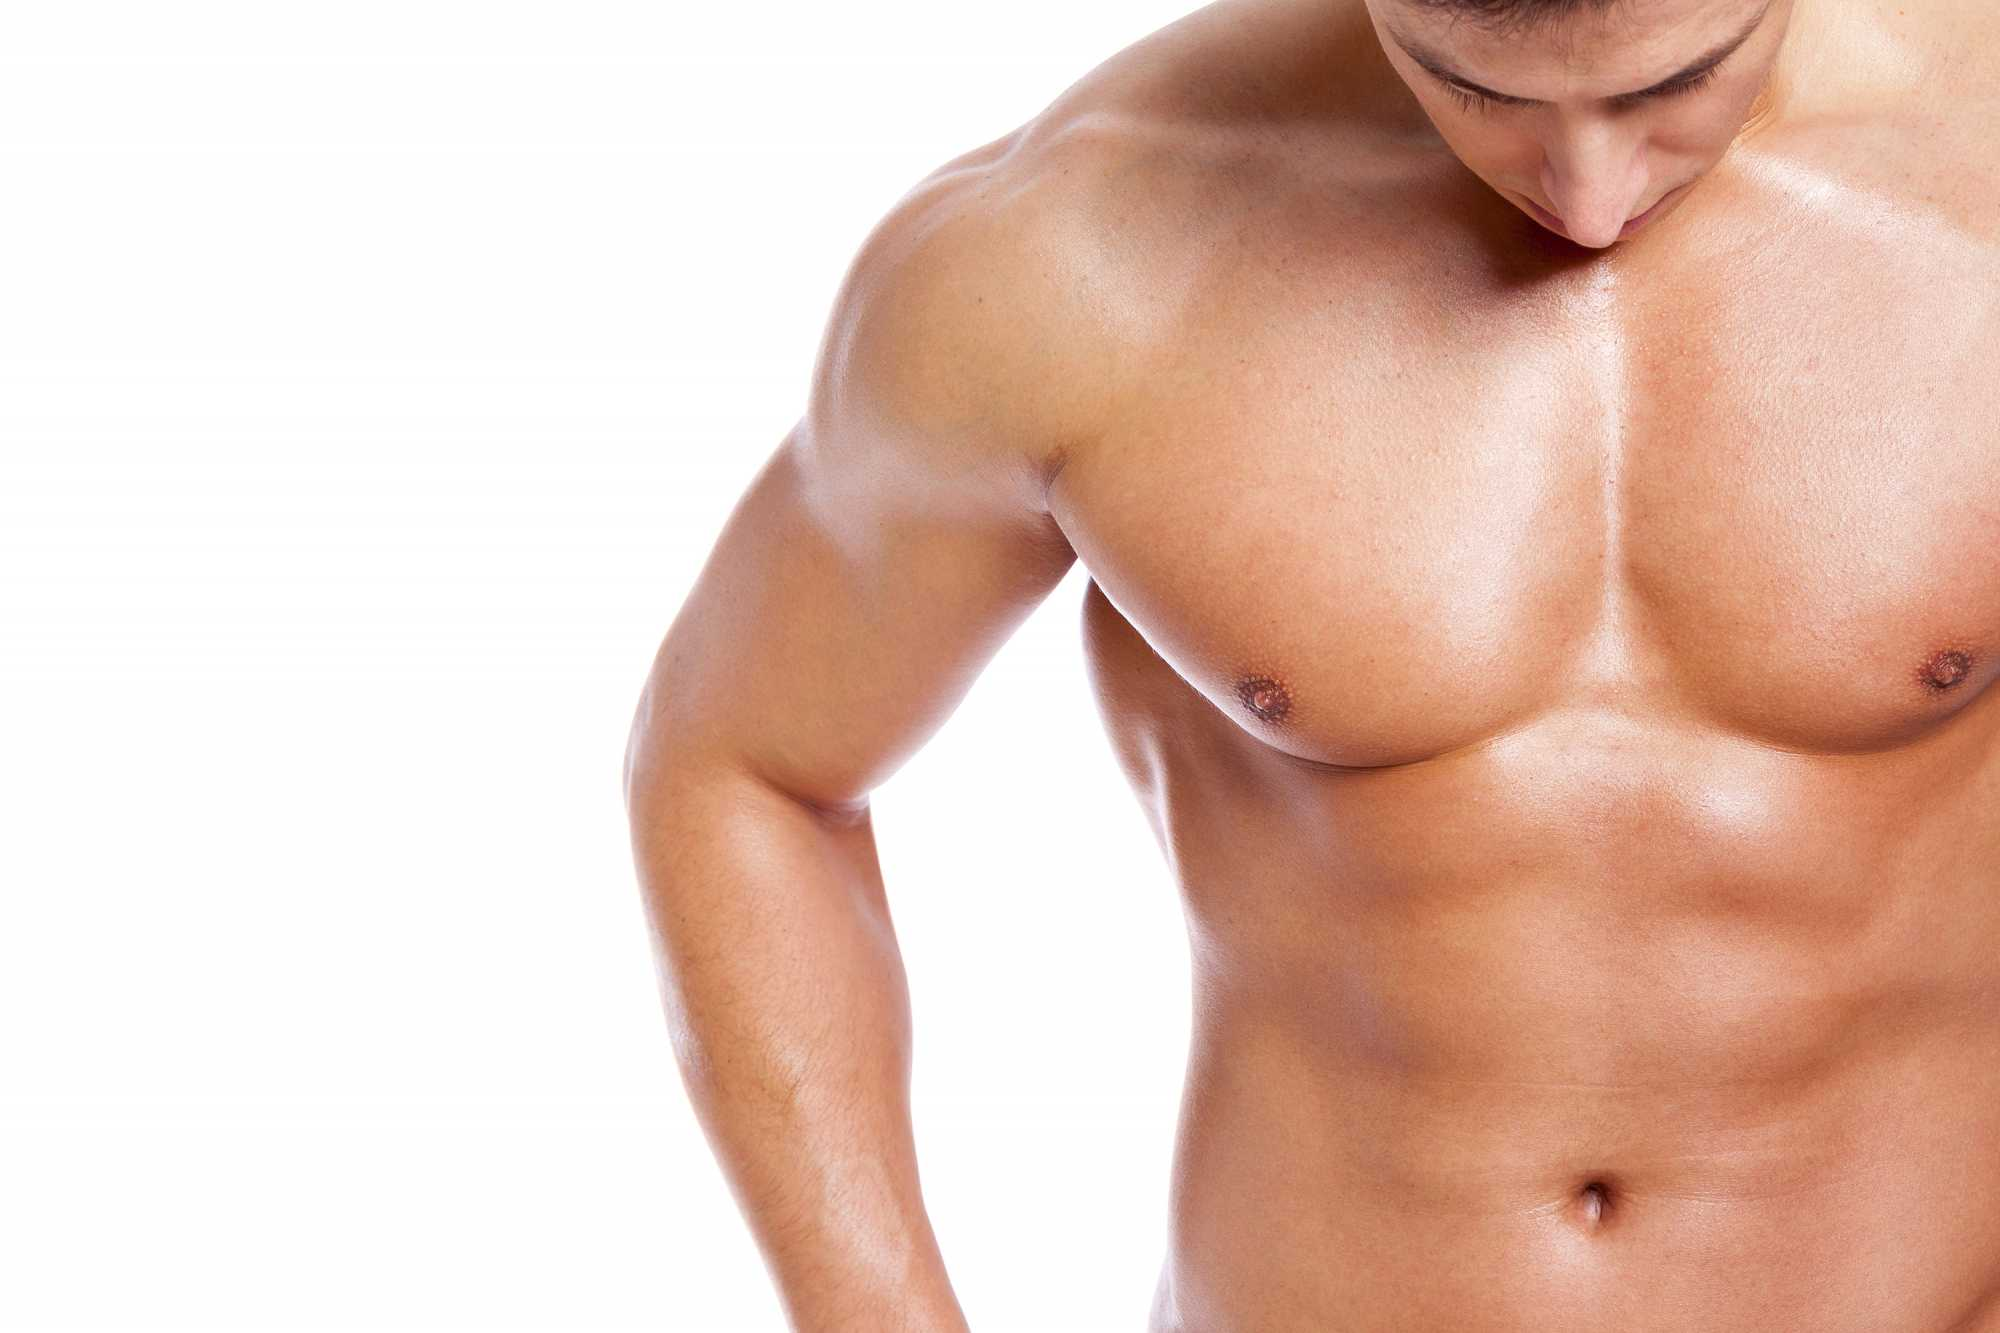 MALE BREAST REDUCTION - (GYNECOMASTIA OR